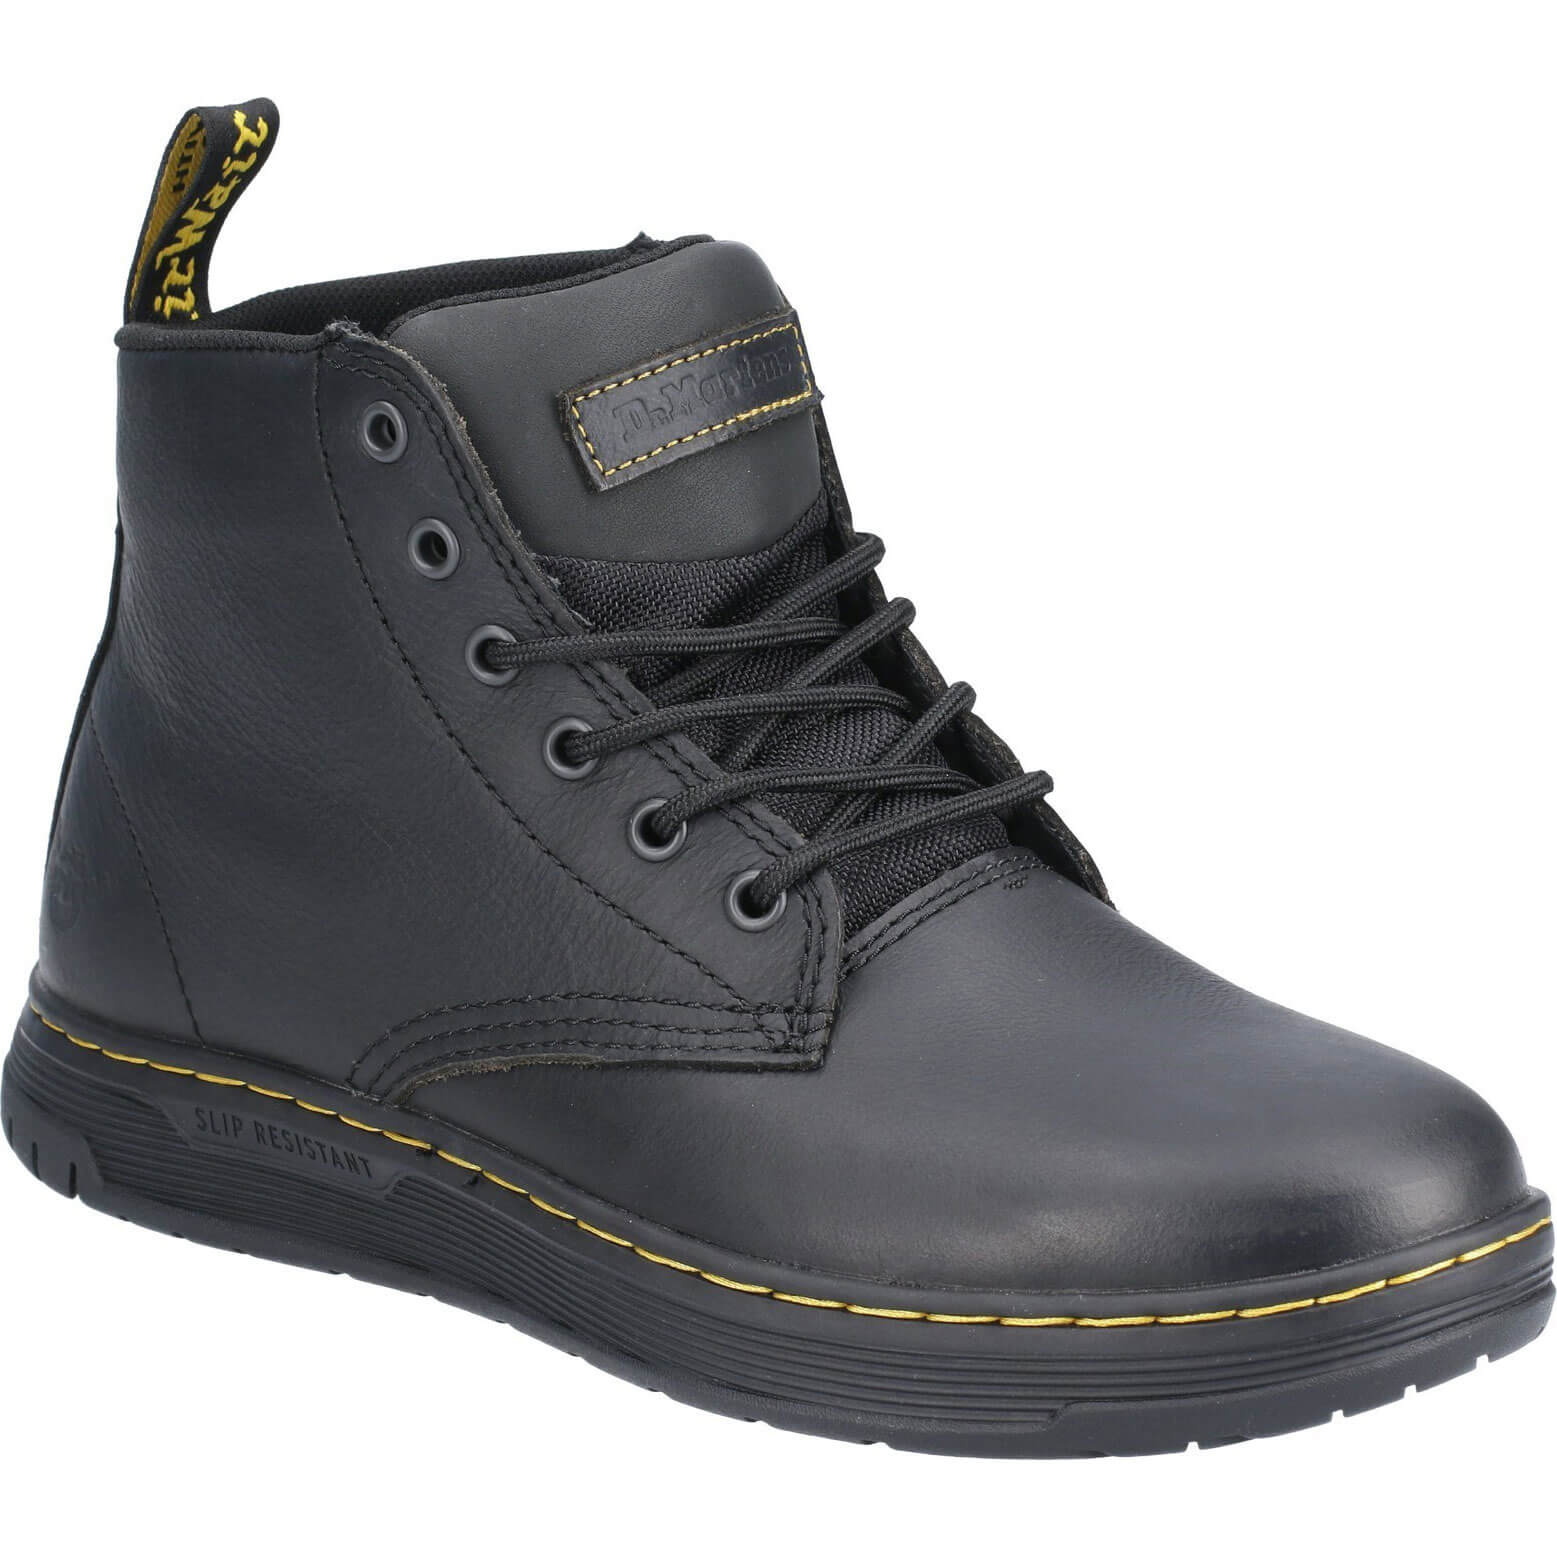 Image of Dr Martens Amwell Safety Boot Black Size 10